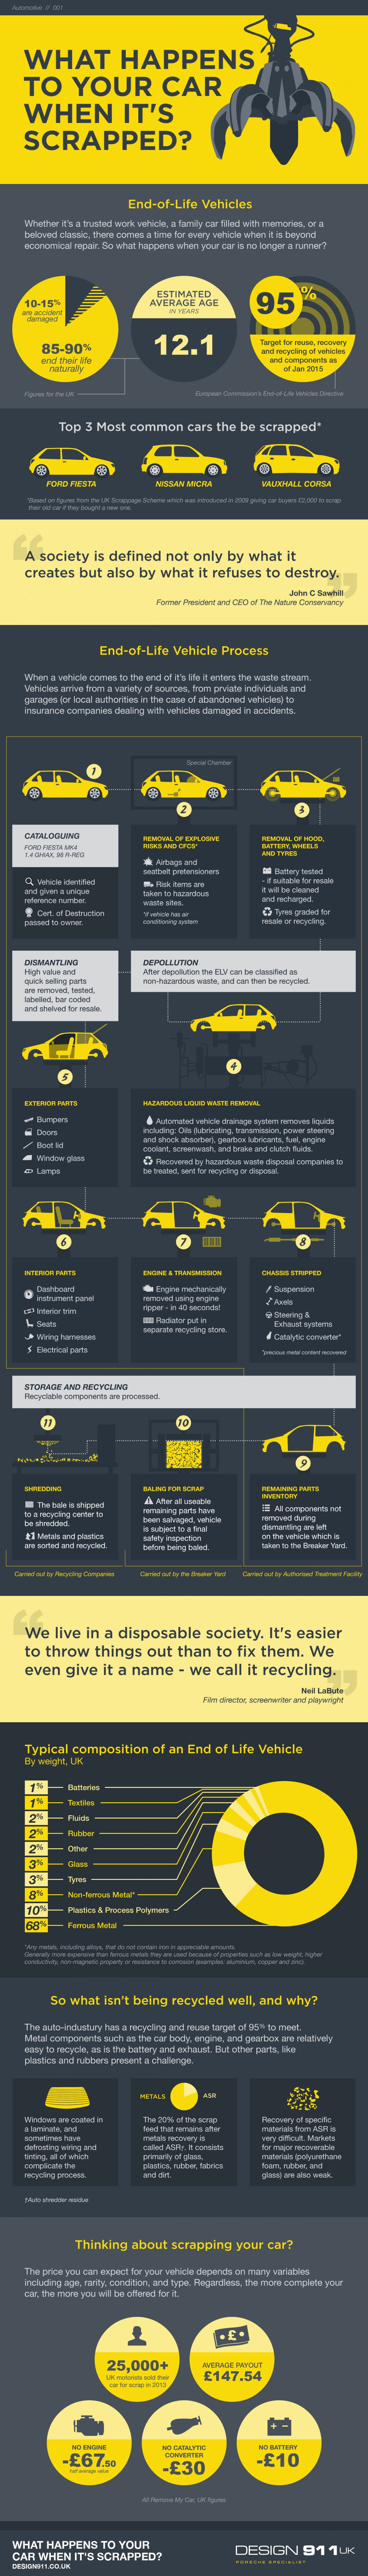 What Happens To Your Car When It's Scrapped?